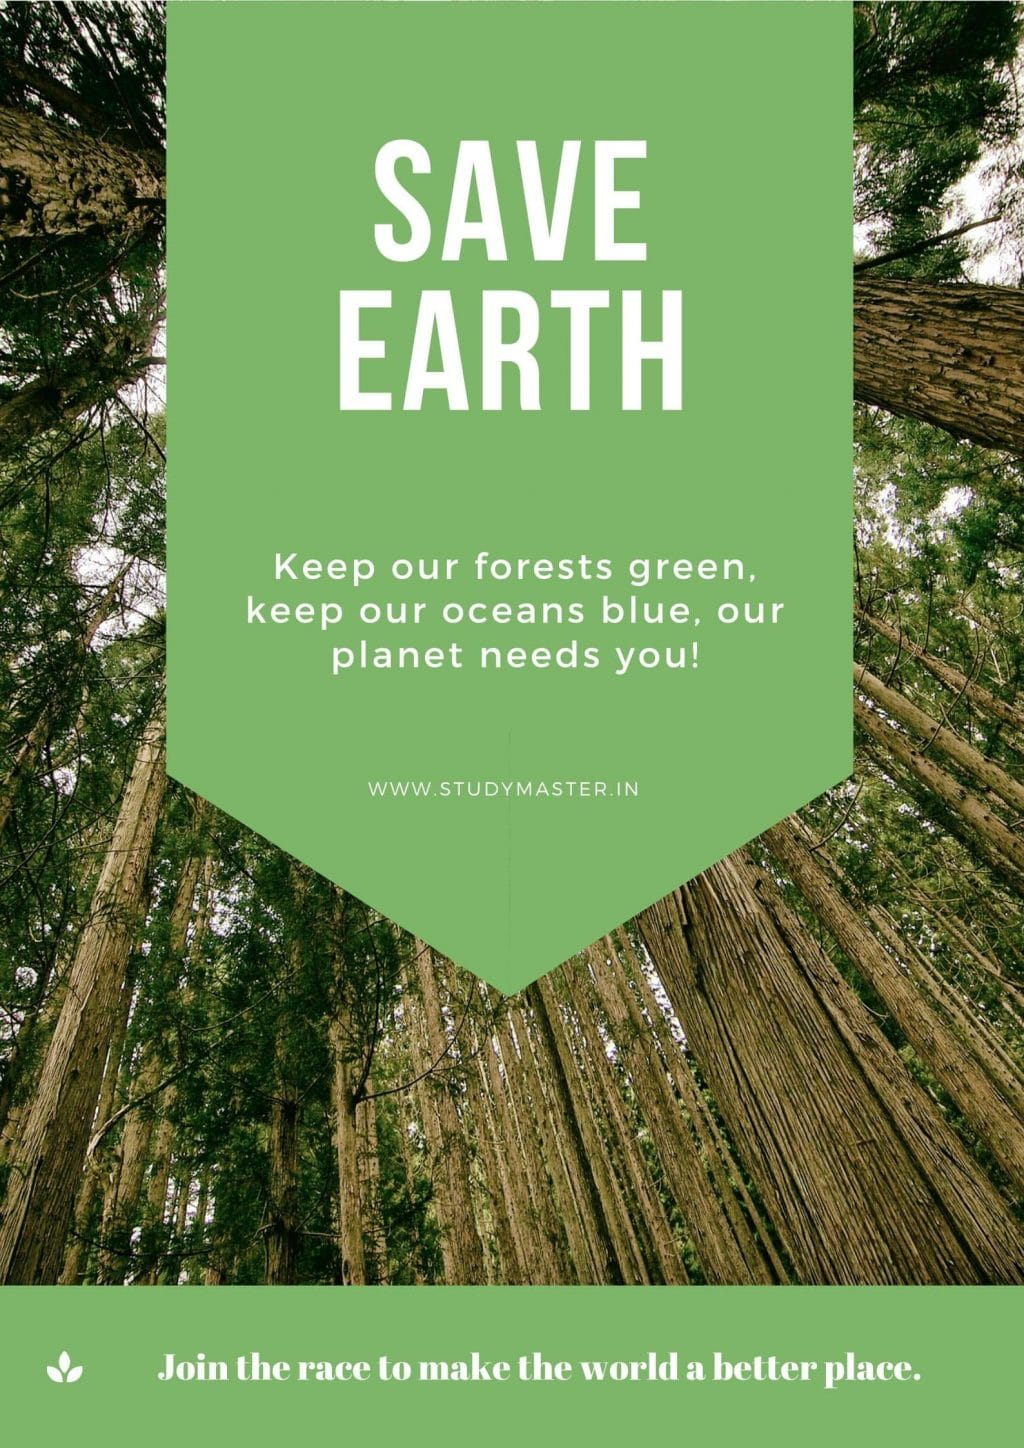 poster to save earth